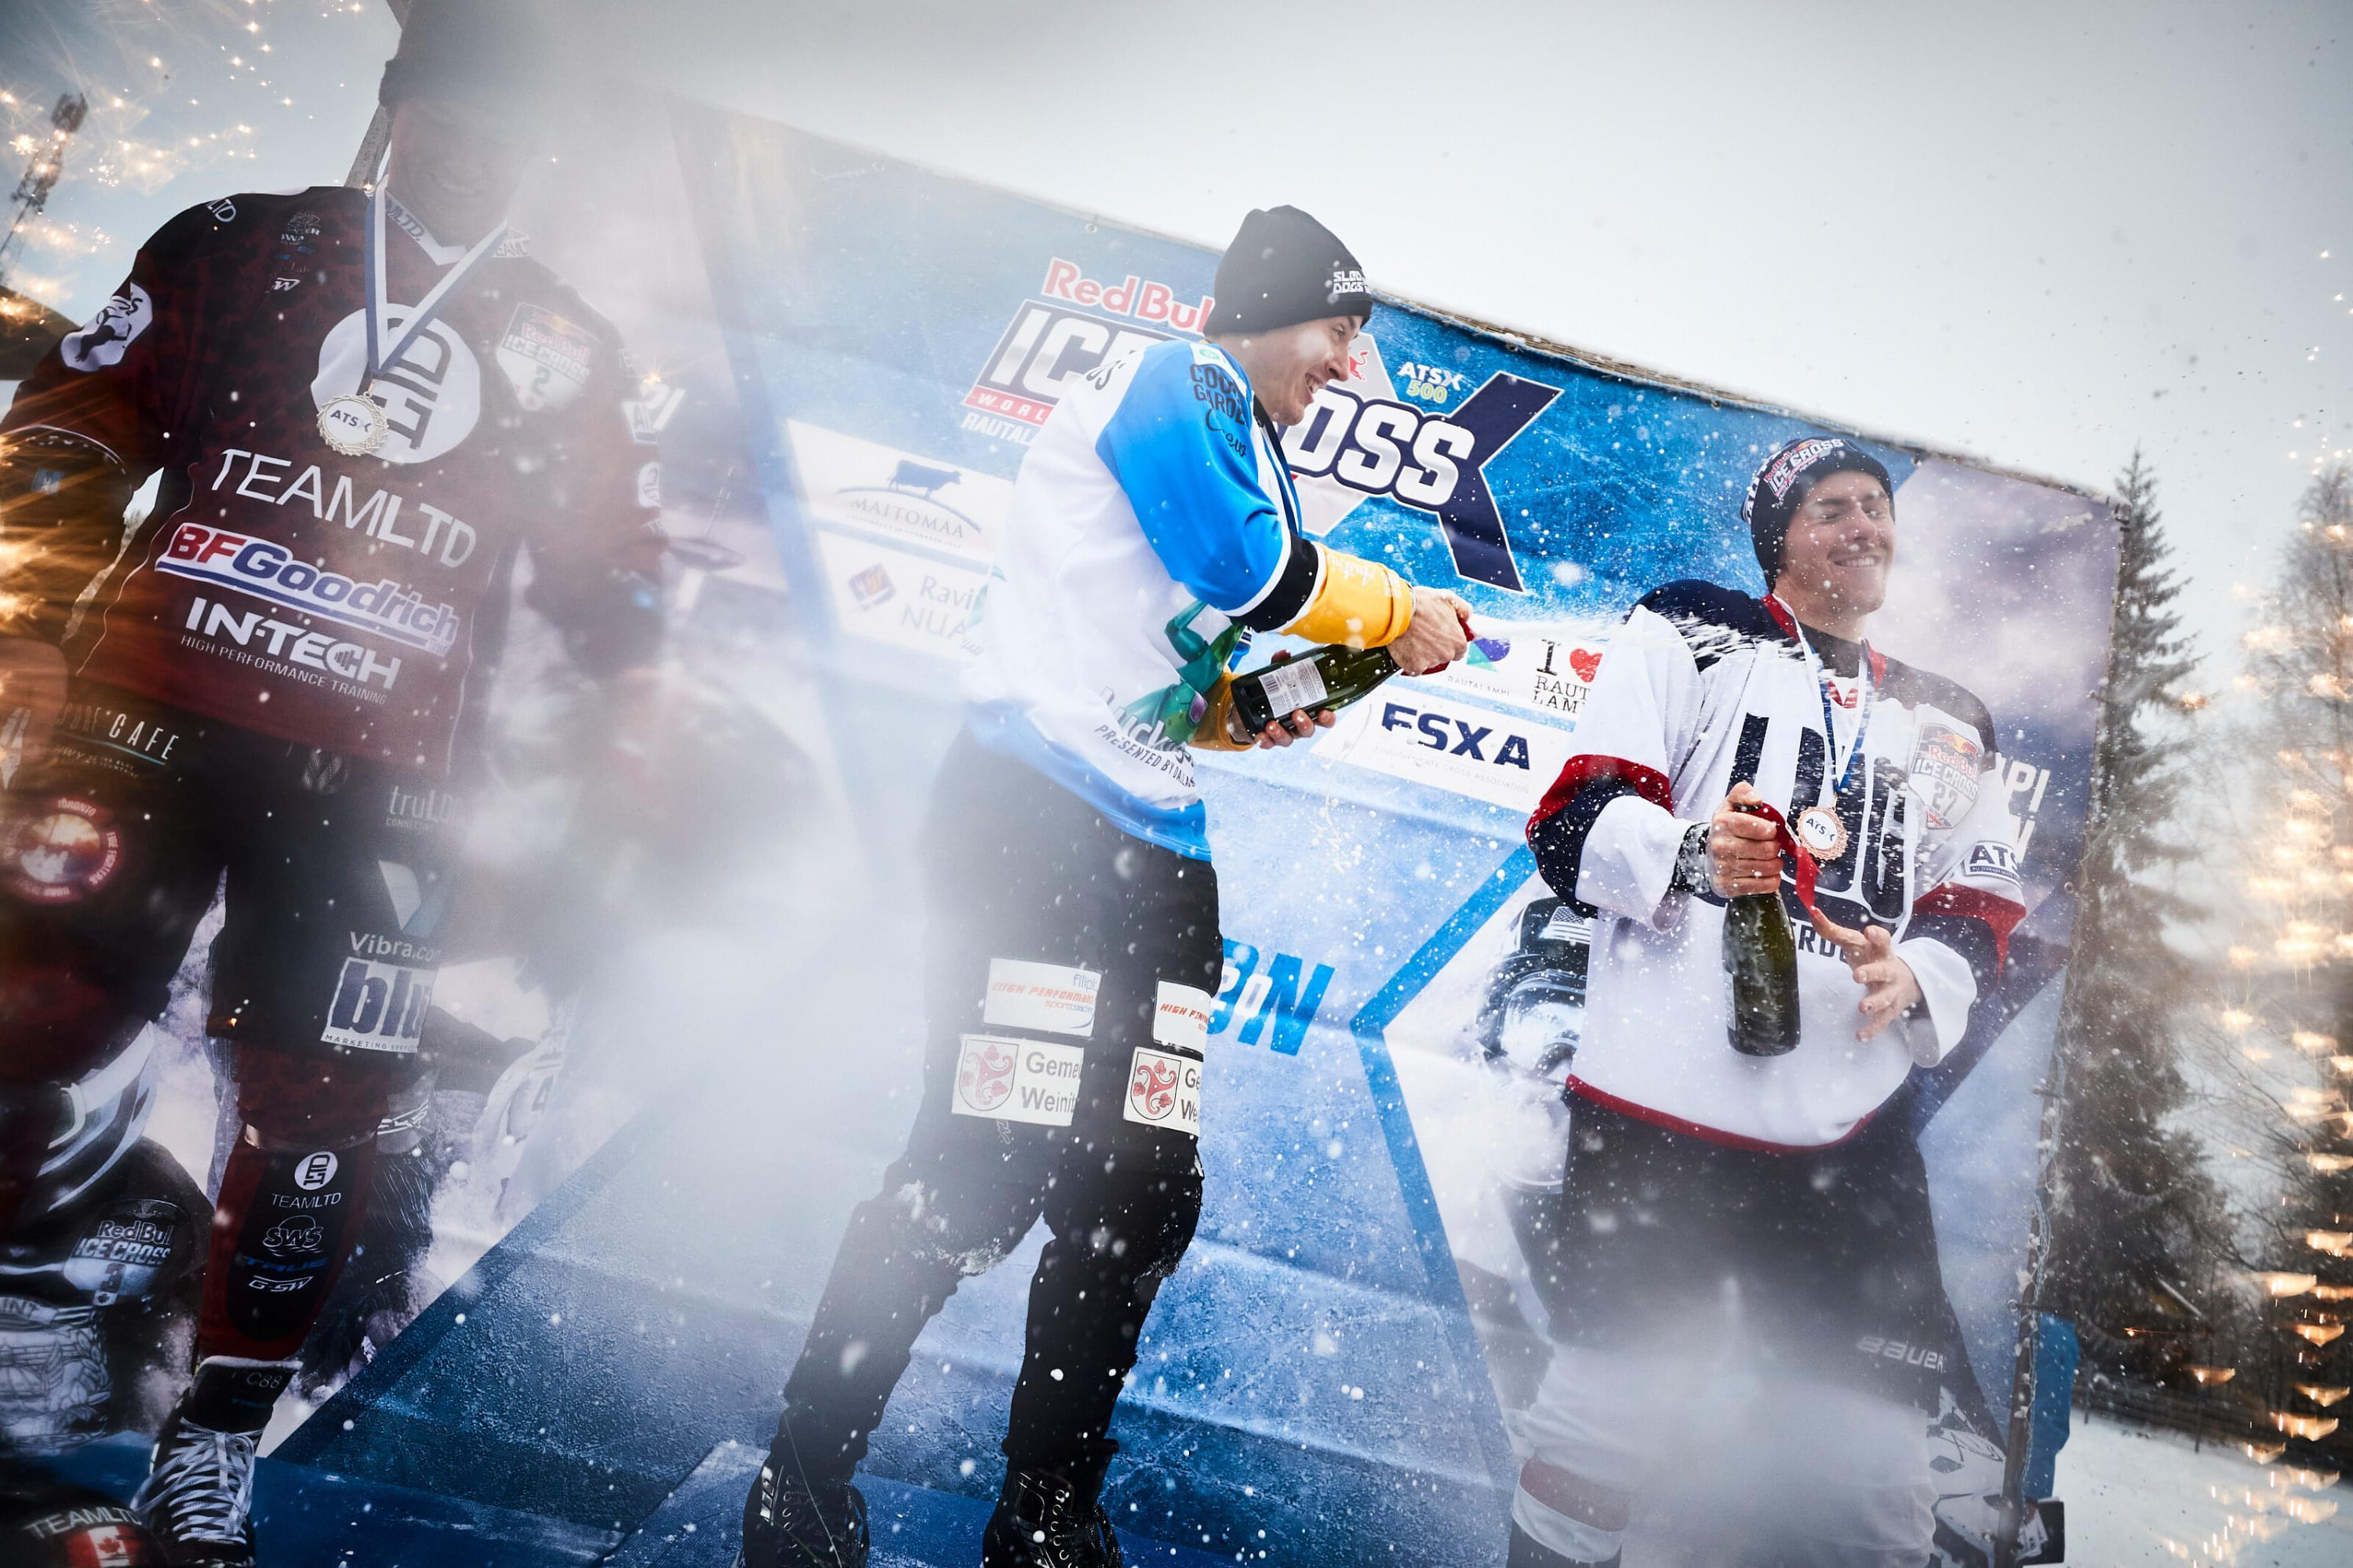 Robin came third in Finland last weekend, his best result yet. Image: Andreas Langreiter / Red Bull Content Pool